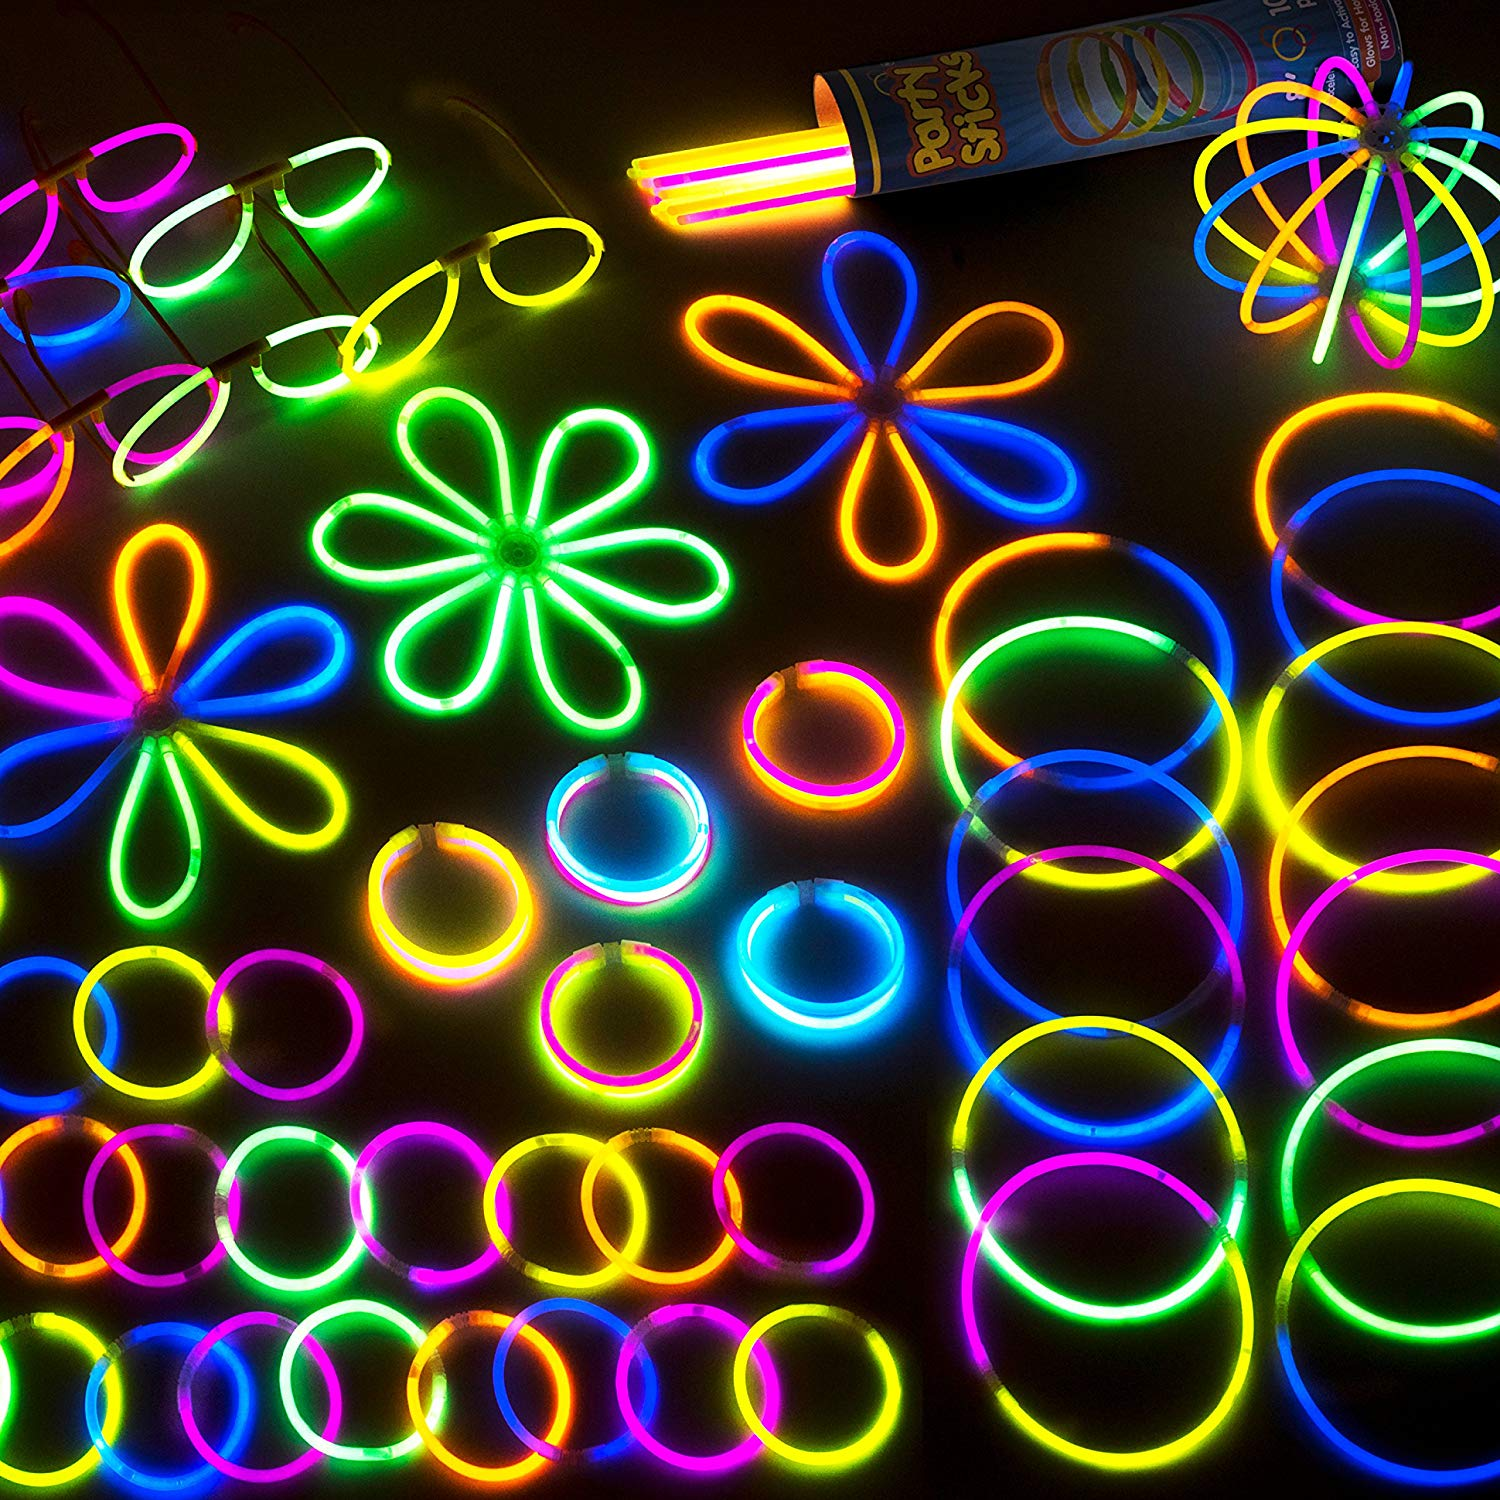 100 Glow Stick Party Pack - 100 Mixed Color 8 Premium Glowsticks with Connectors to Make Bracelets, Glasses, Flowers, Balls and More - Bulk Wholesale Pack